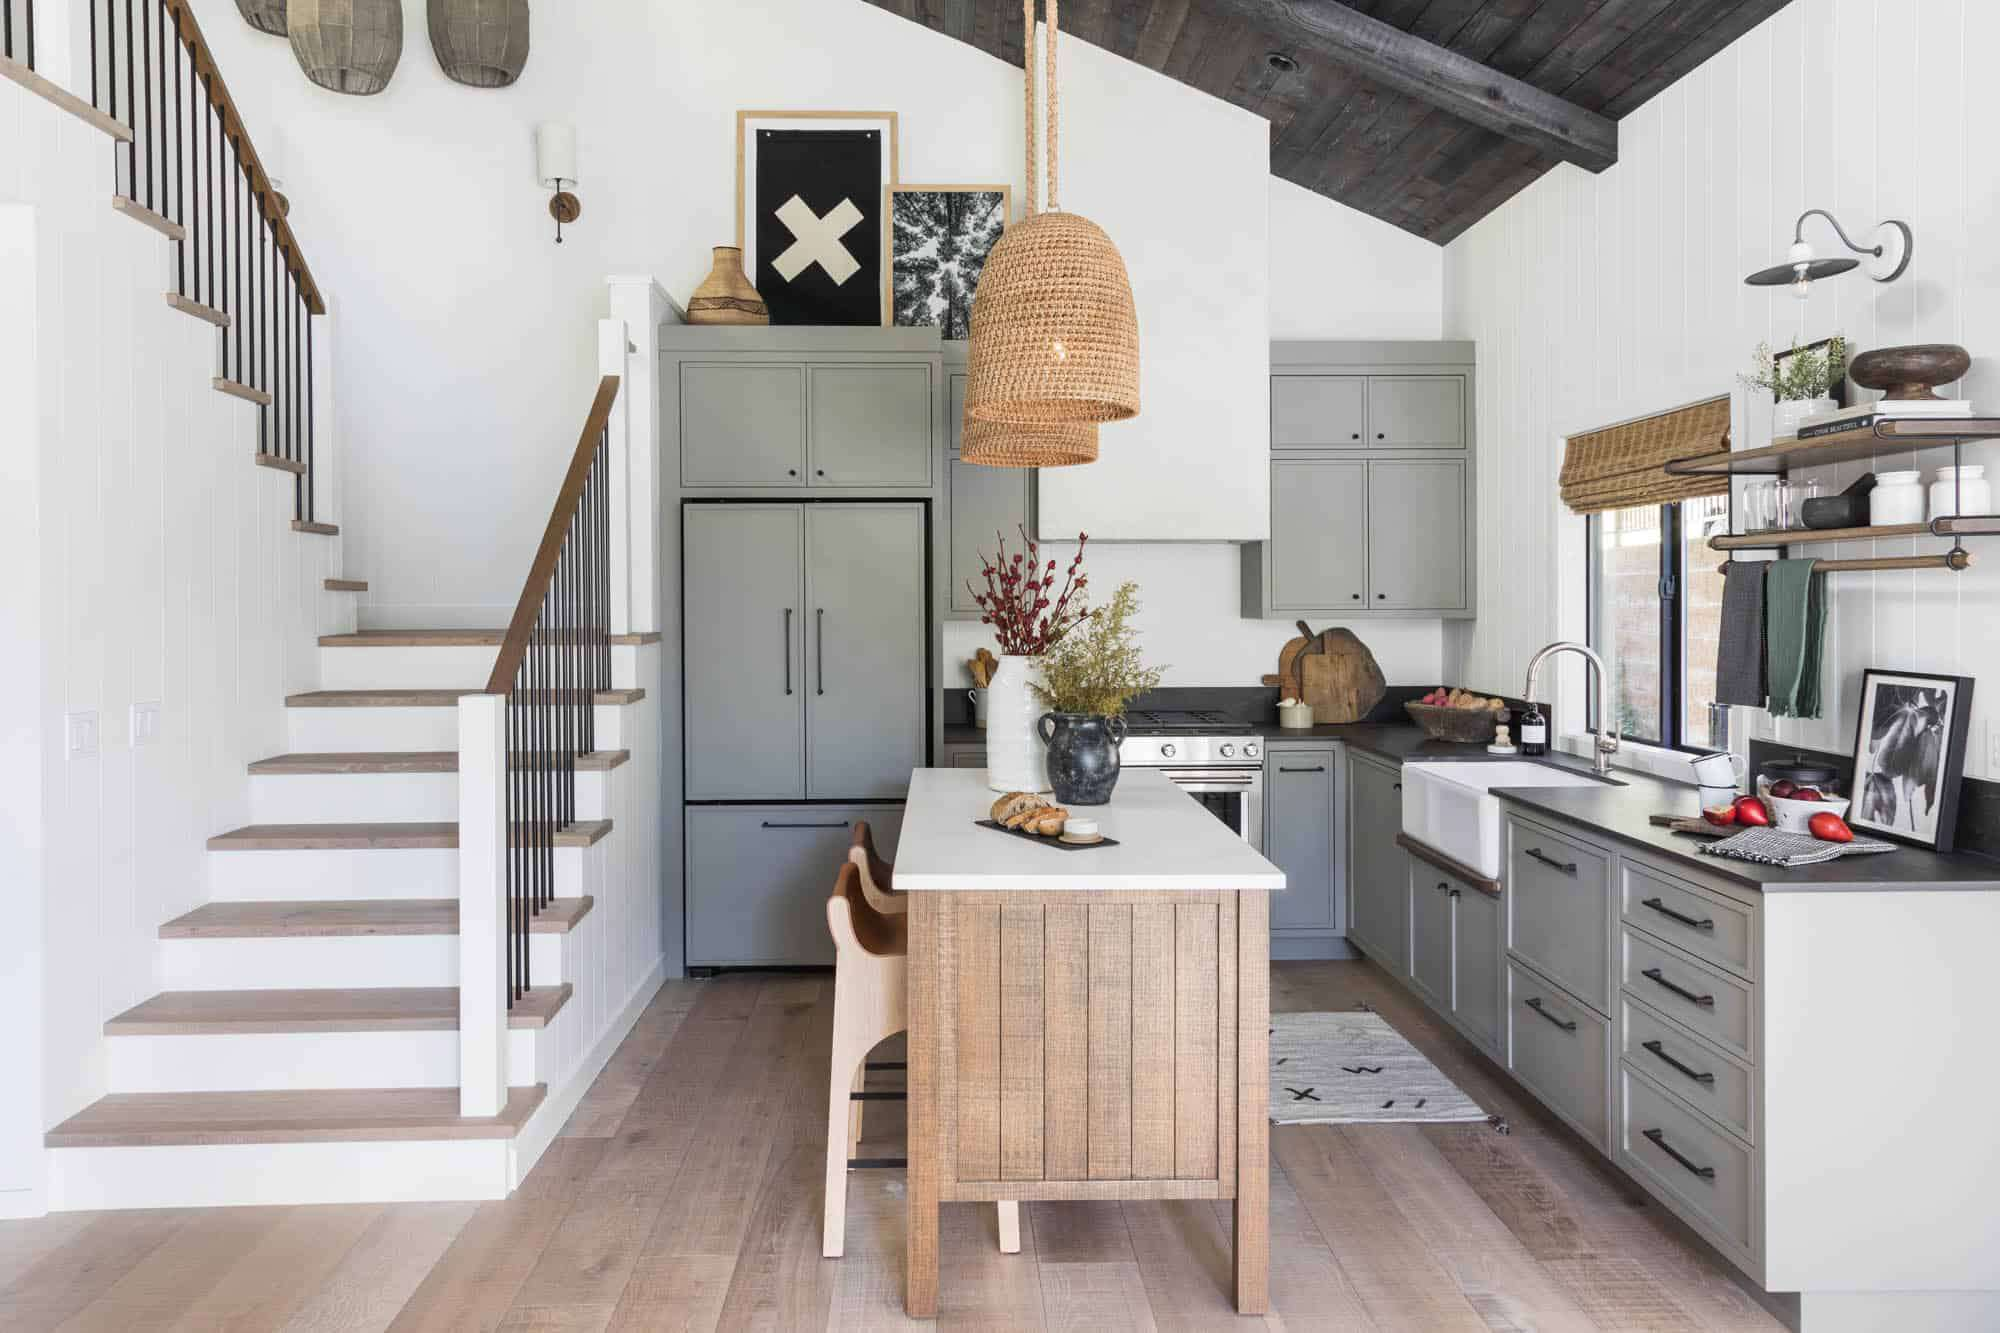 A kitchen with a portable kitchen island